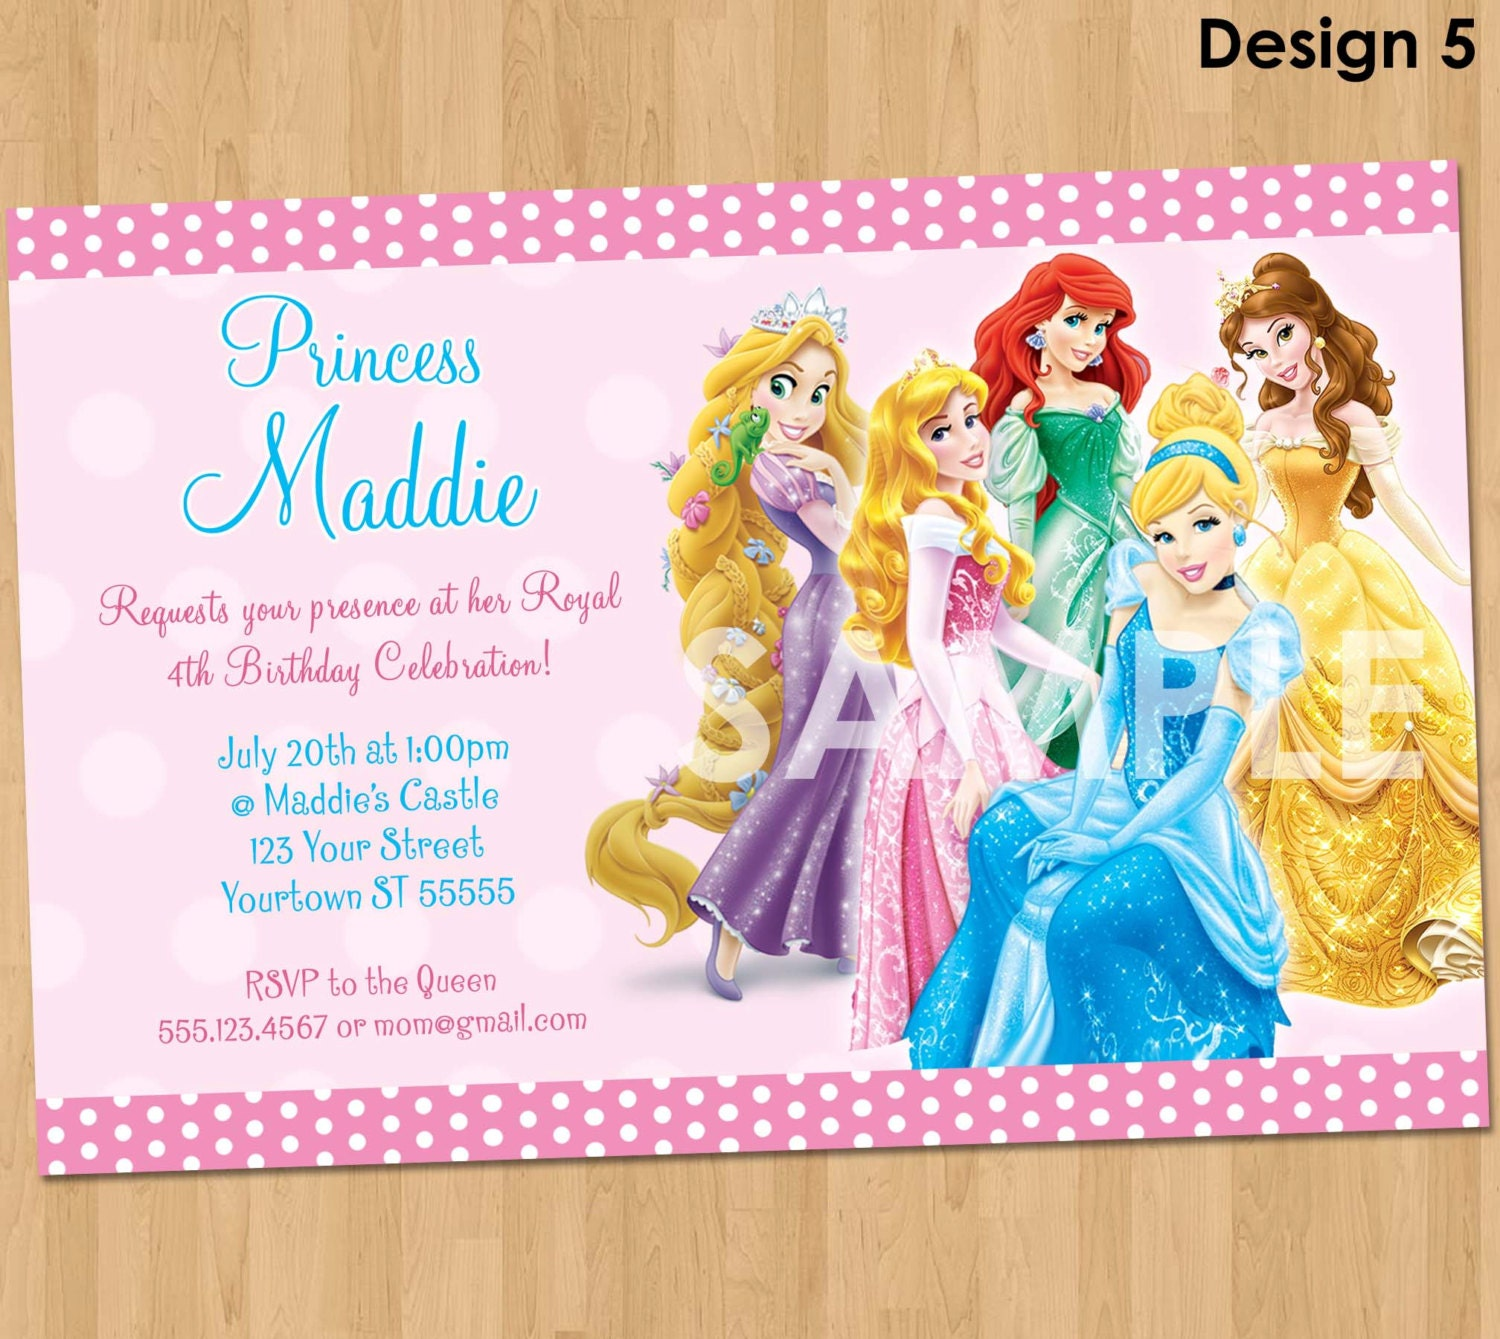 Template for disney party invitation orderecigsjuicefo princess invitation disney princess invitation birthday wedding invitations xflitez Gallery